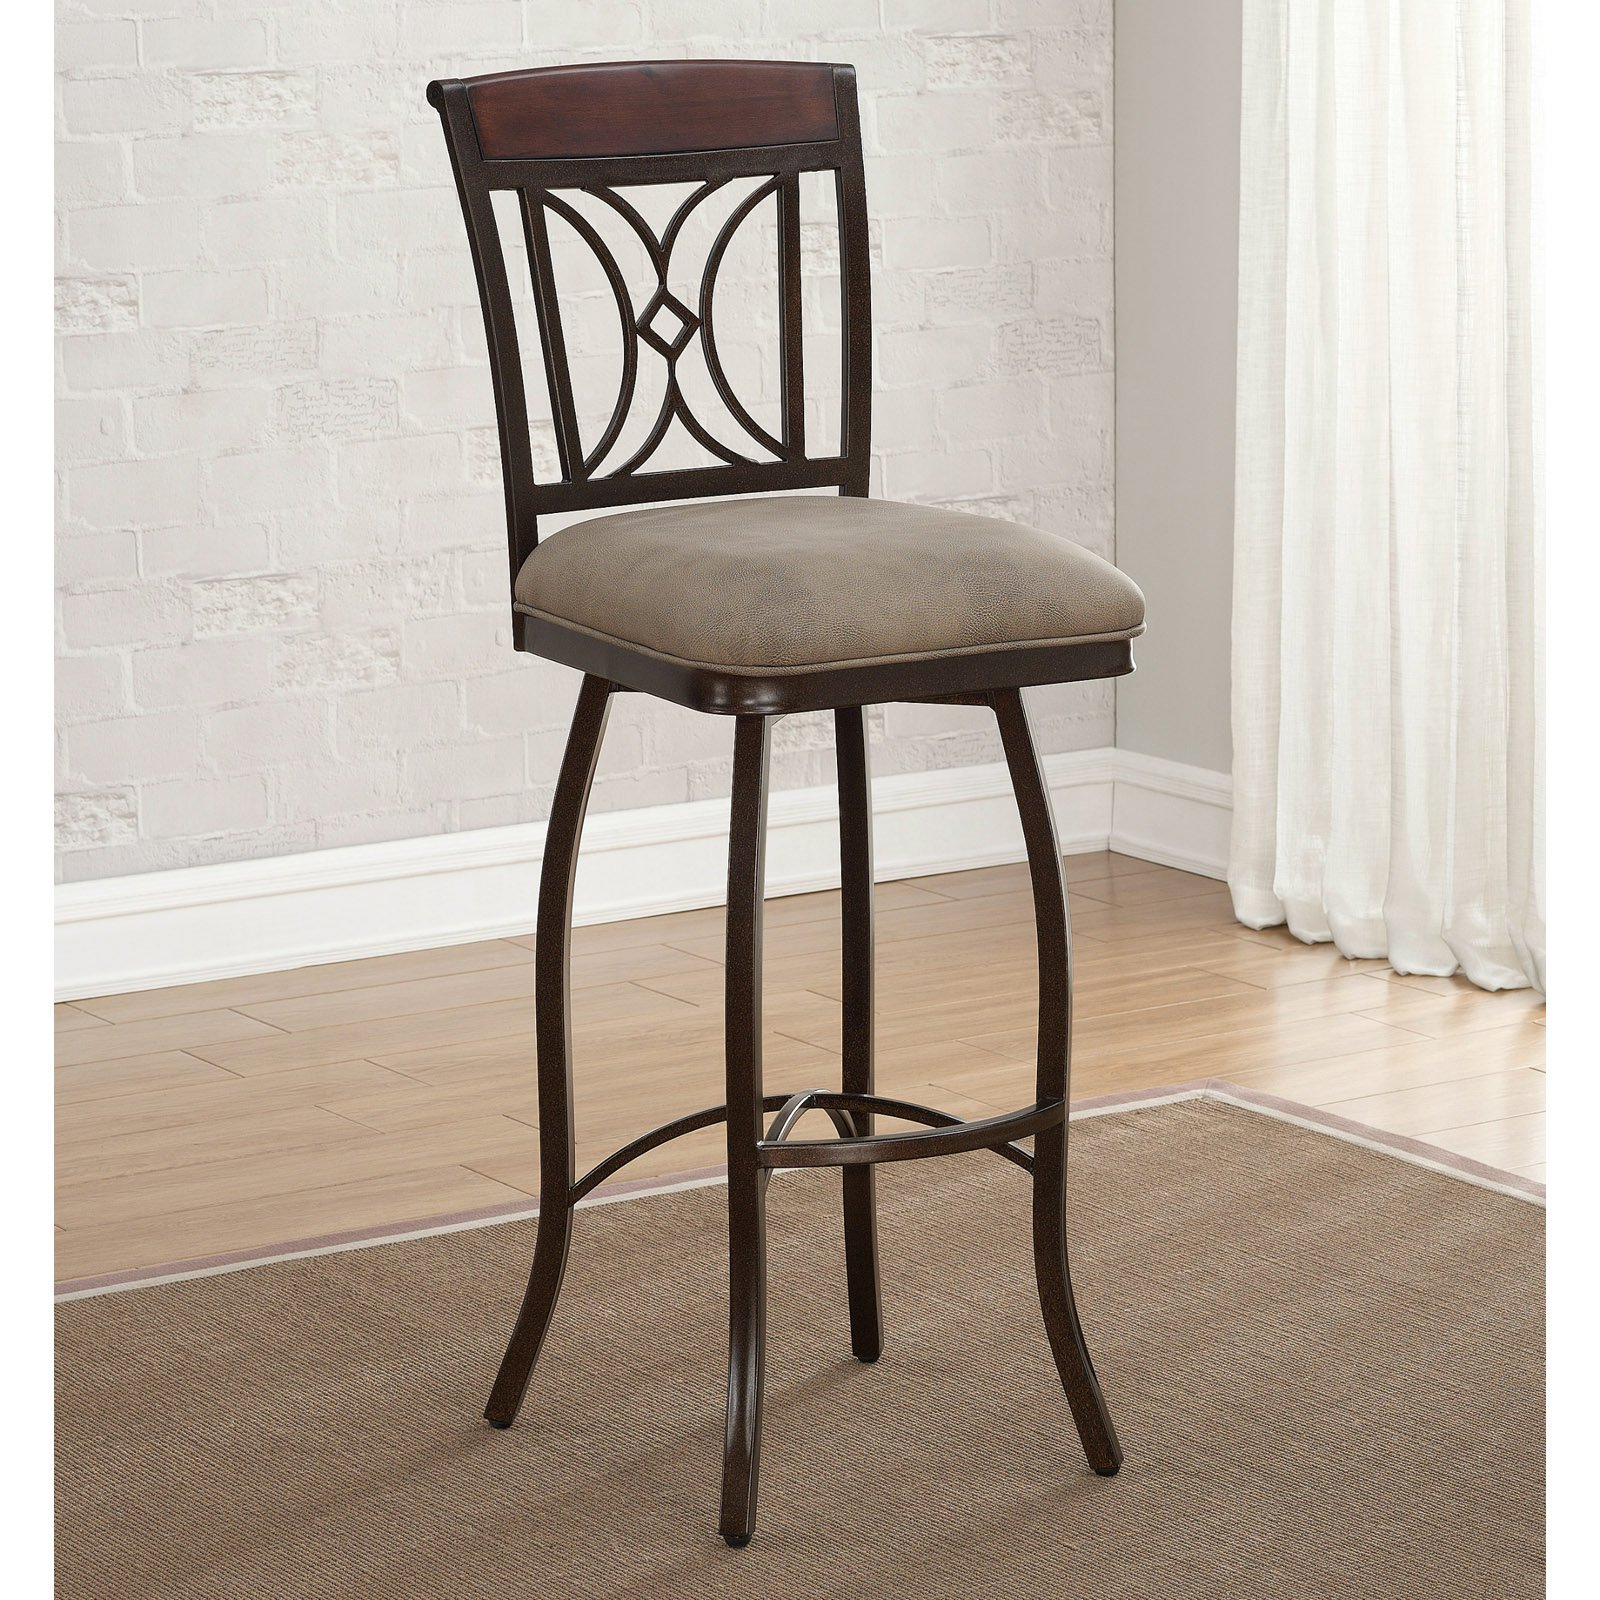 American Heritage Eden Counter Height Stool by American Heritage Billiards